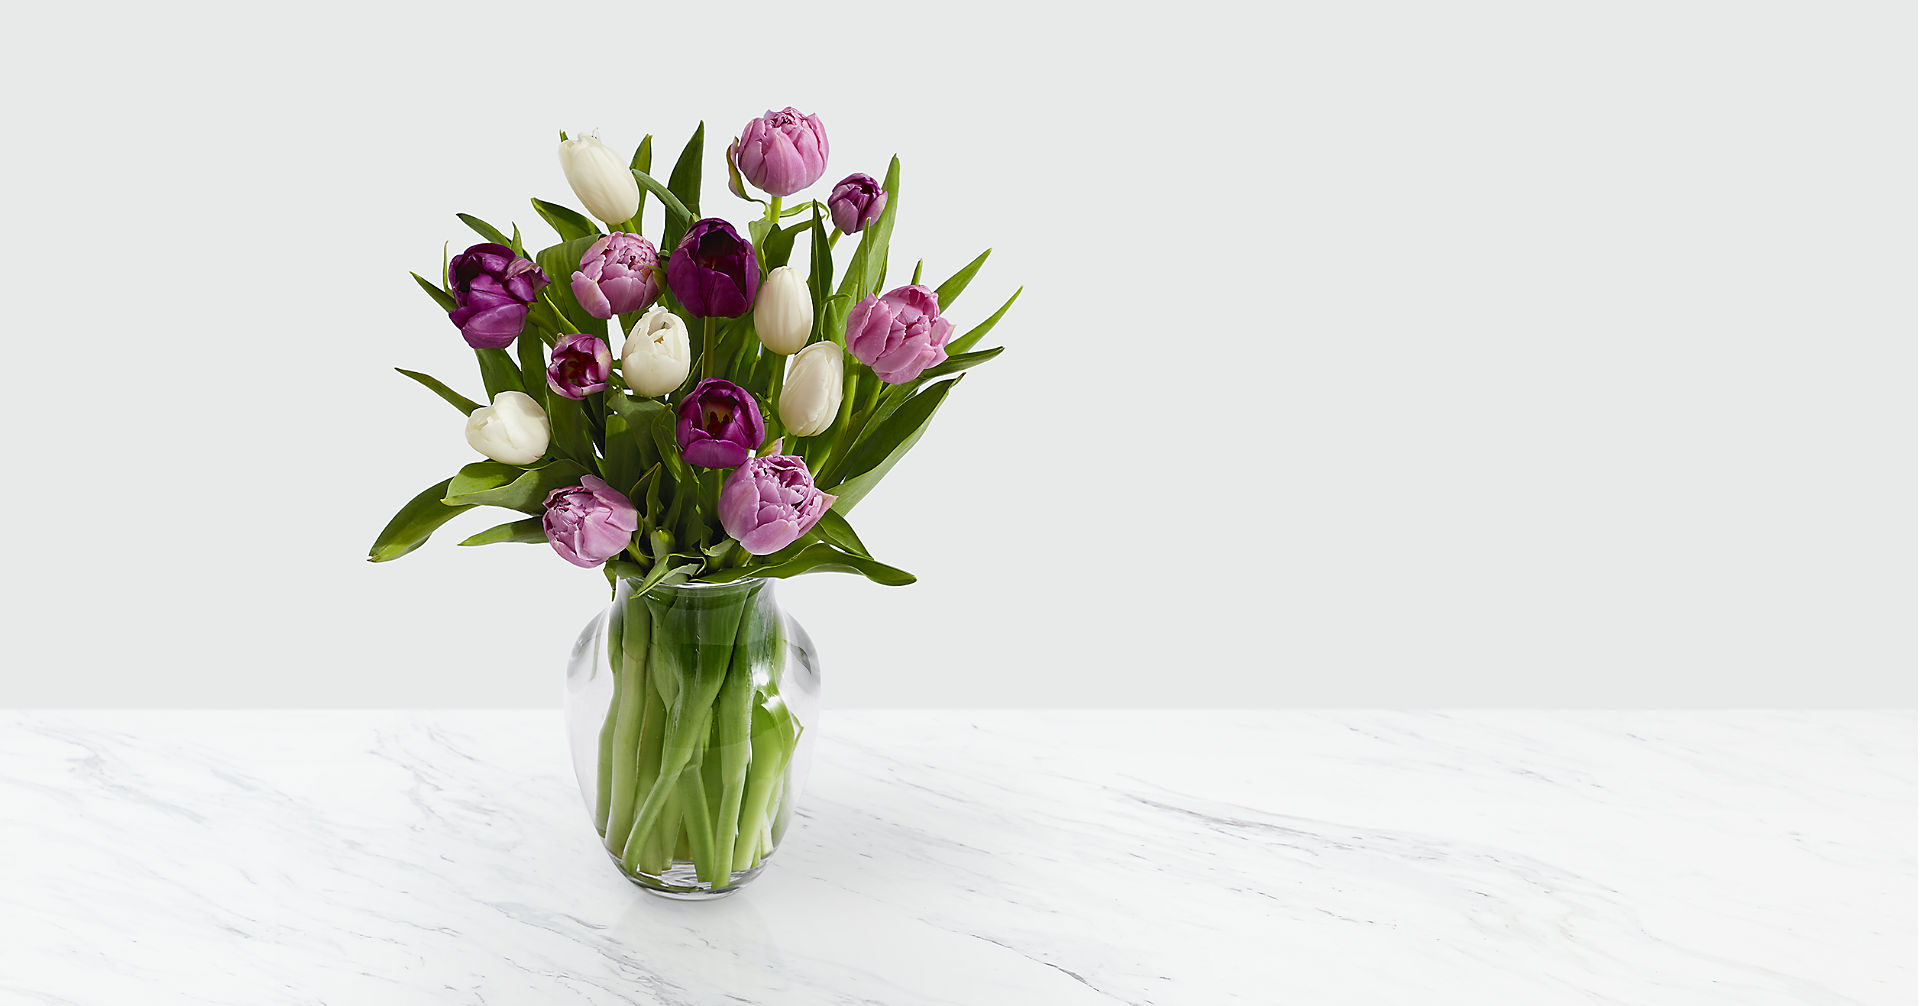 Darling Lavender & White Tulips with Vase - Image 1 Of 2